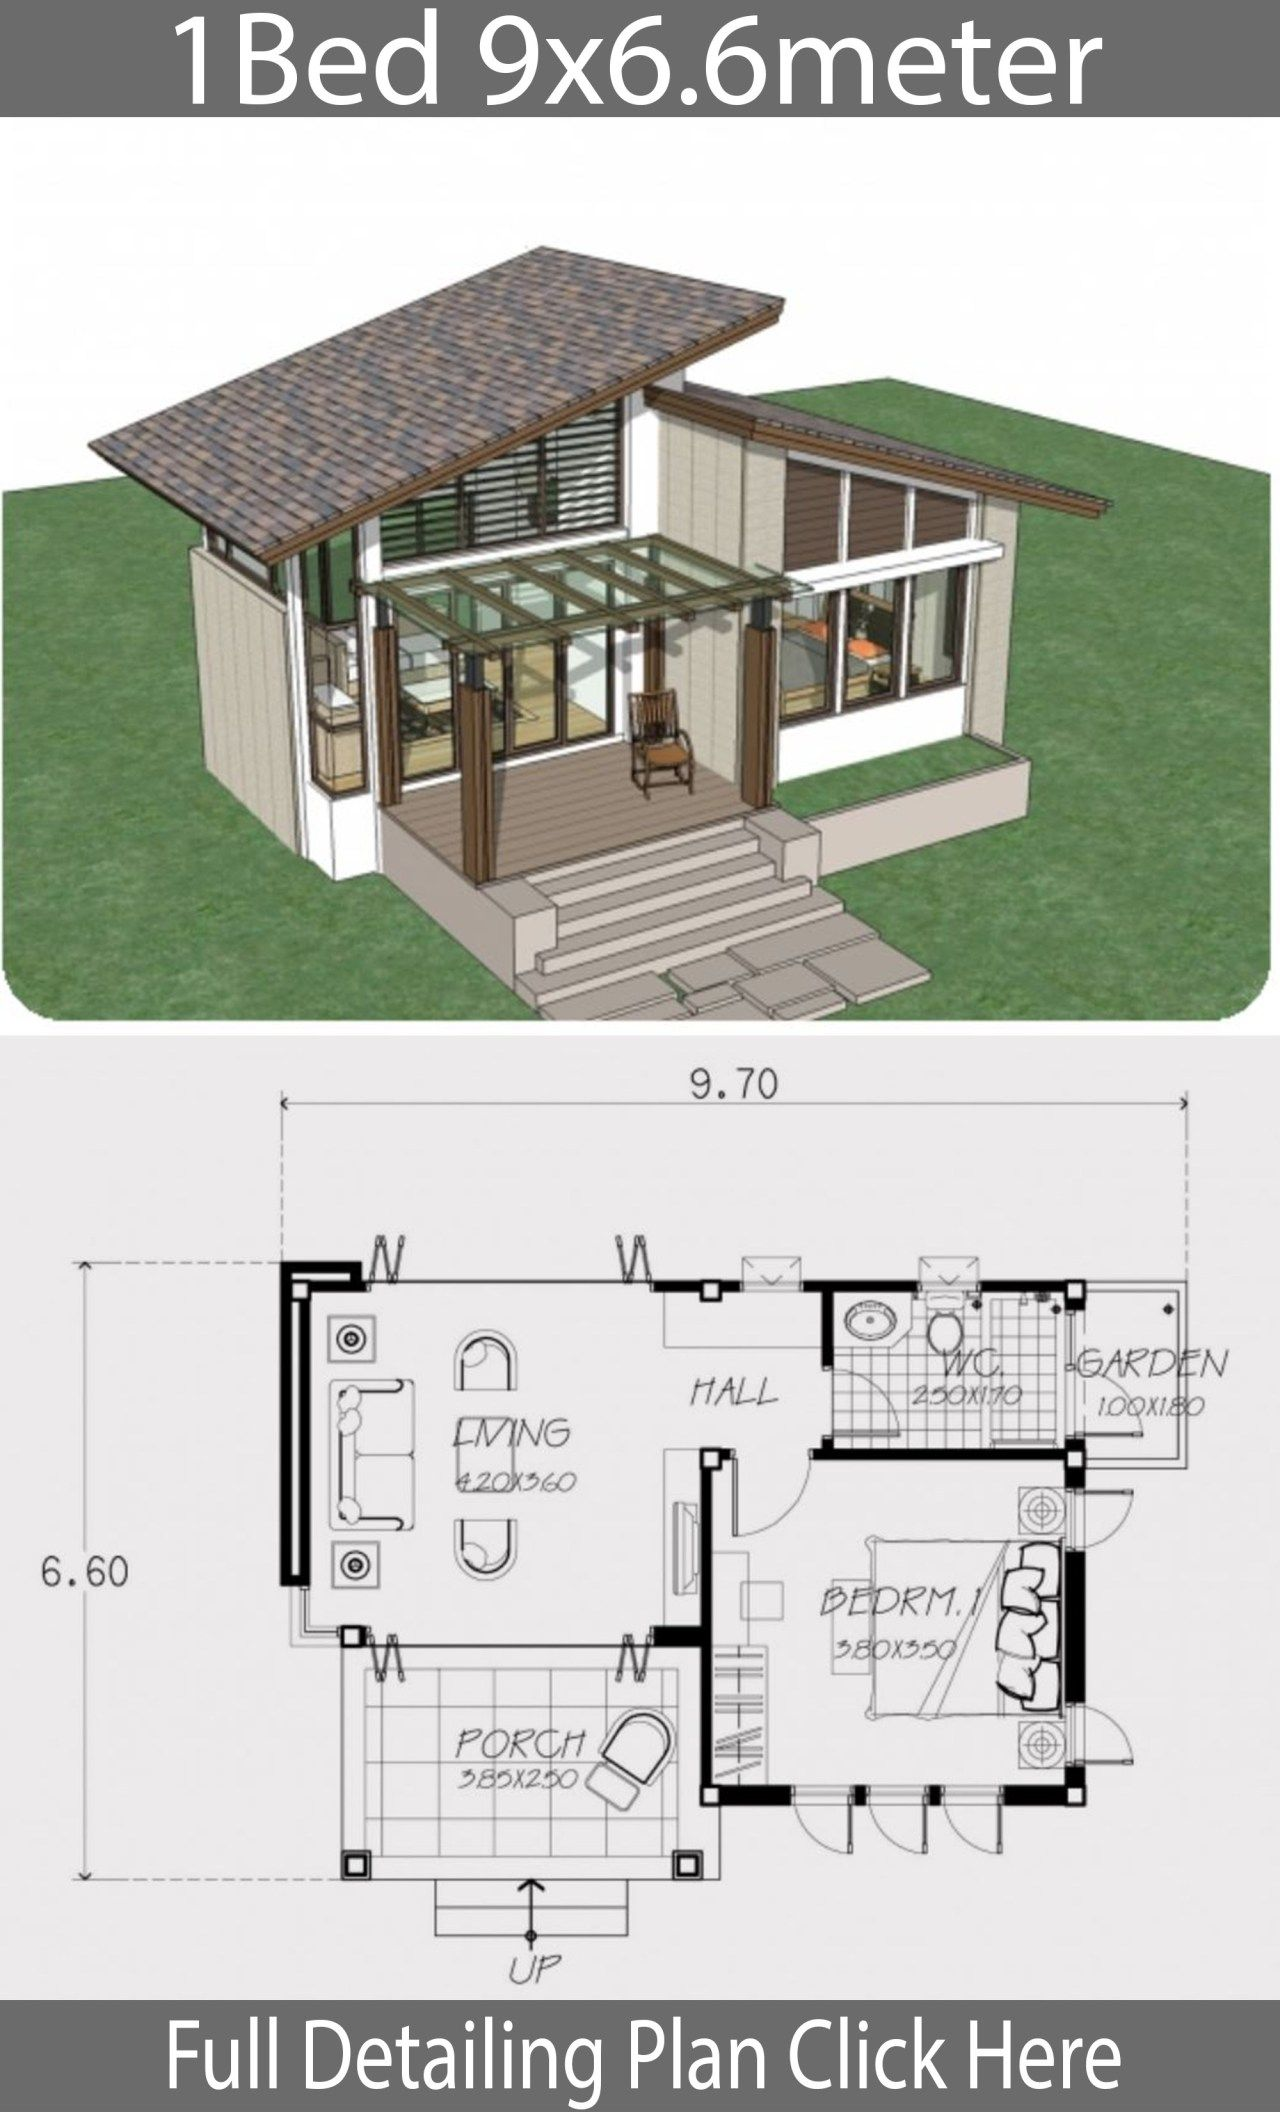 Small Home Design Plan 9x6 6m With One Bedroom Home Ideas Small House Style One Bedroom House Small House Design Plans